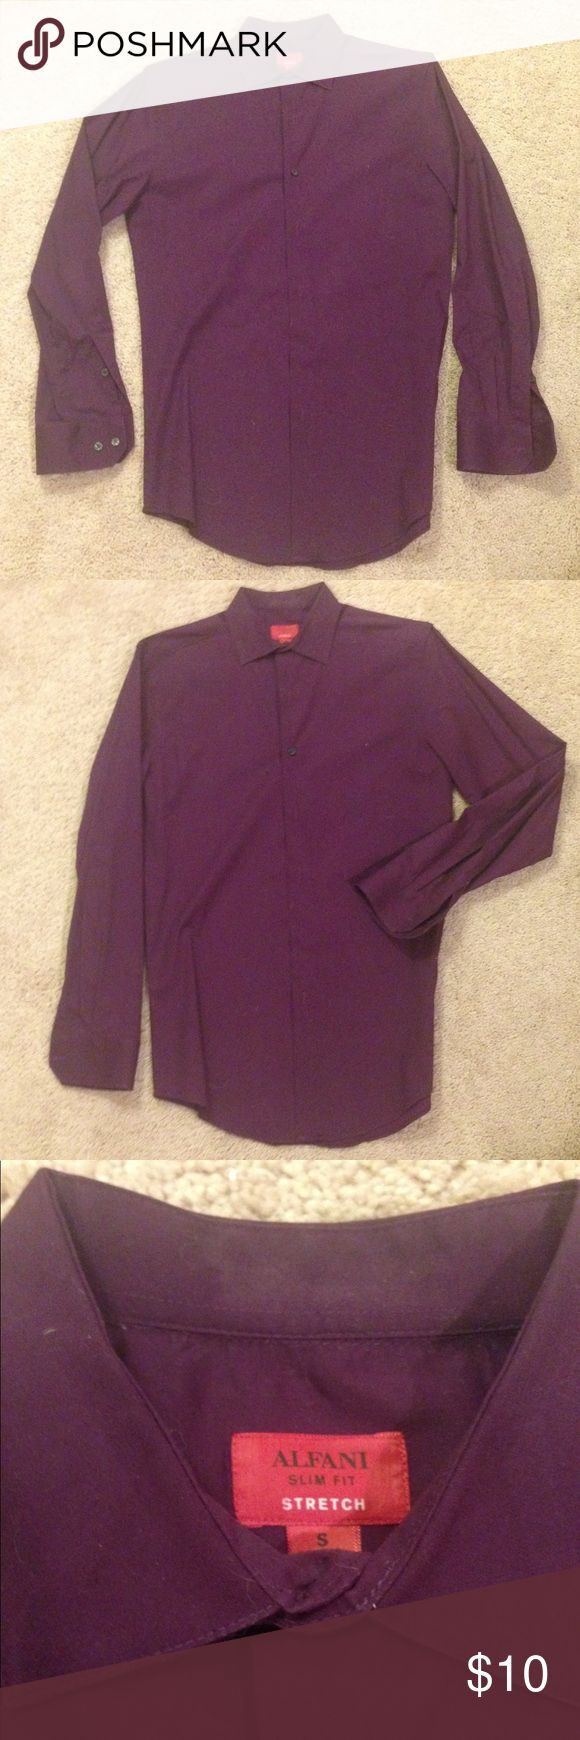 Men's purple dress shirt Slim-fit, stretch dress shirt. Dark purple /  eggplant colored. Gently worn and dry cleaned. All buttons firmly attached (buttons are black). Bundle for HUGE discounts 👍🏻👍🏻 Alfani Shirts Dress Shirts